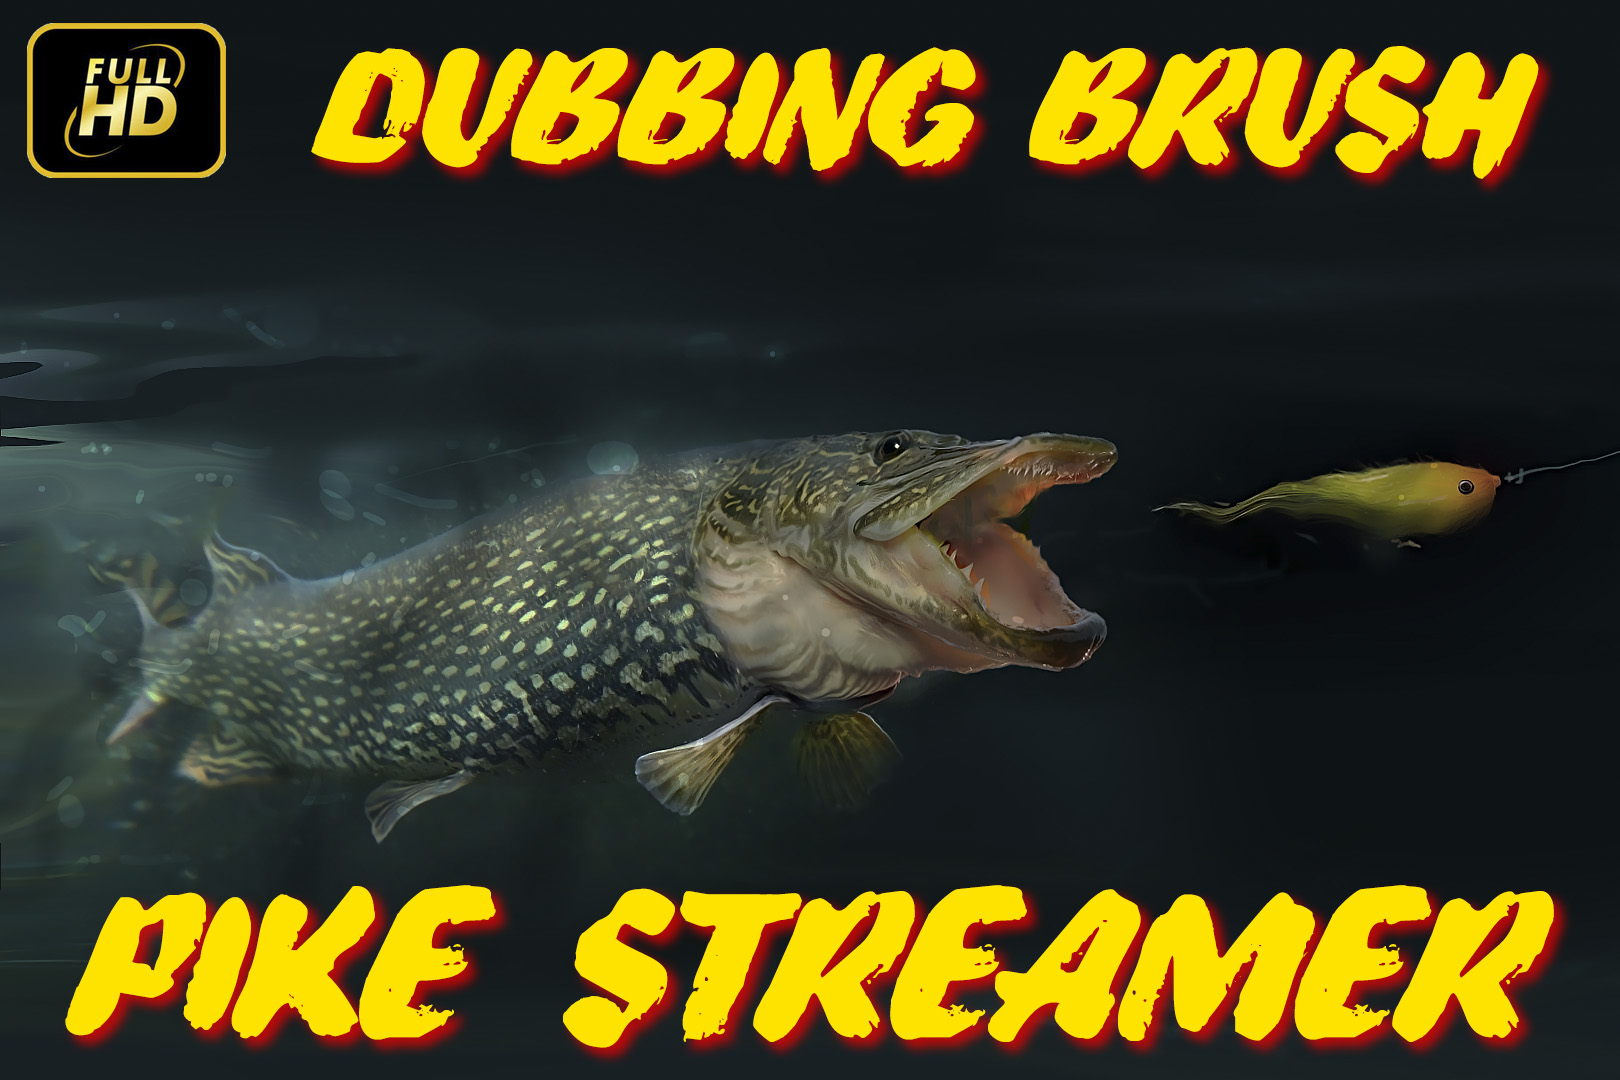 Dubbing Brush Pike Streamer